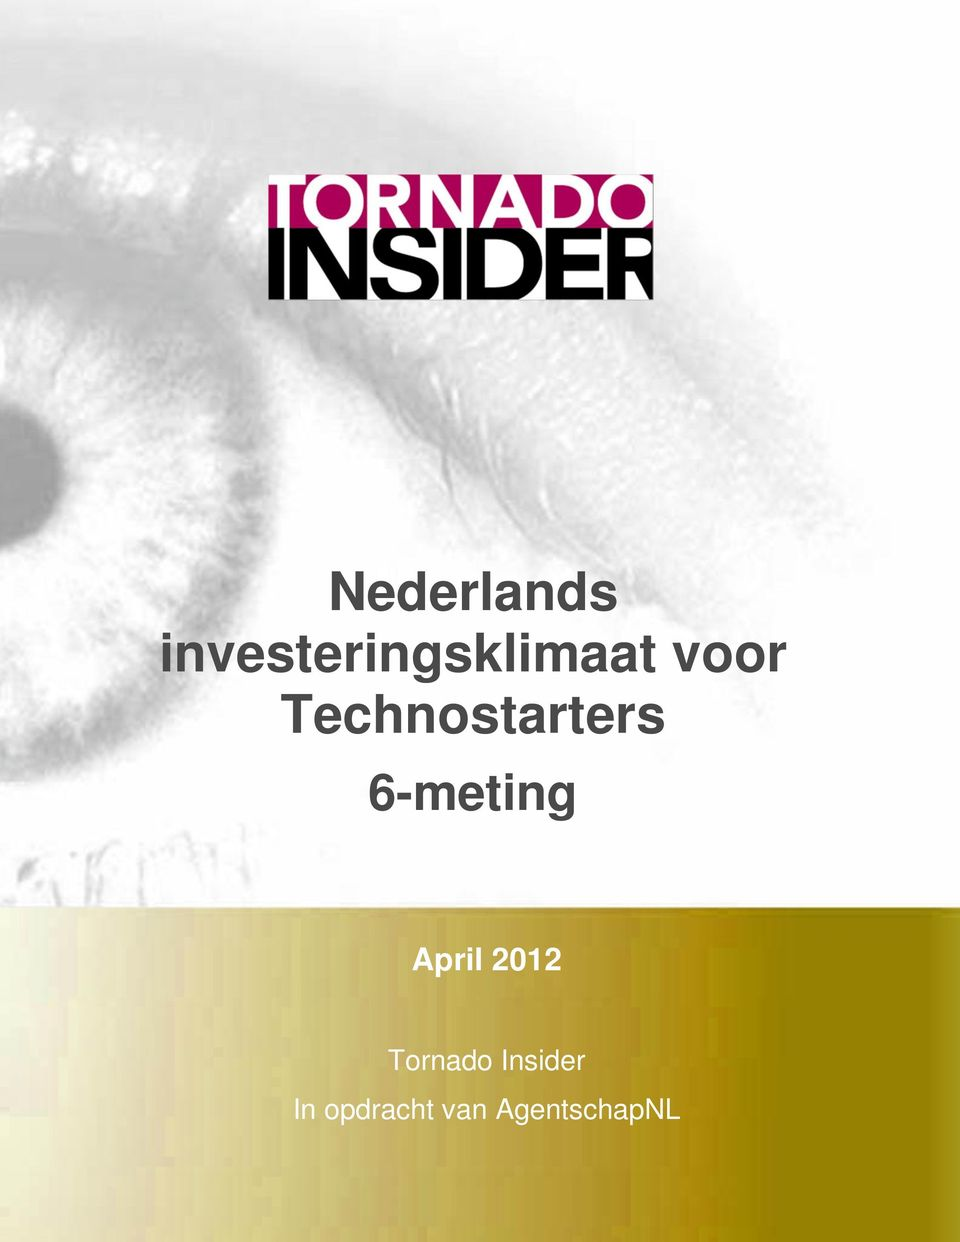 Technostarters 6-meting April